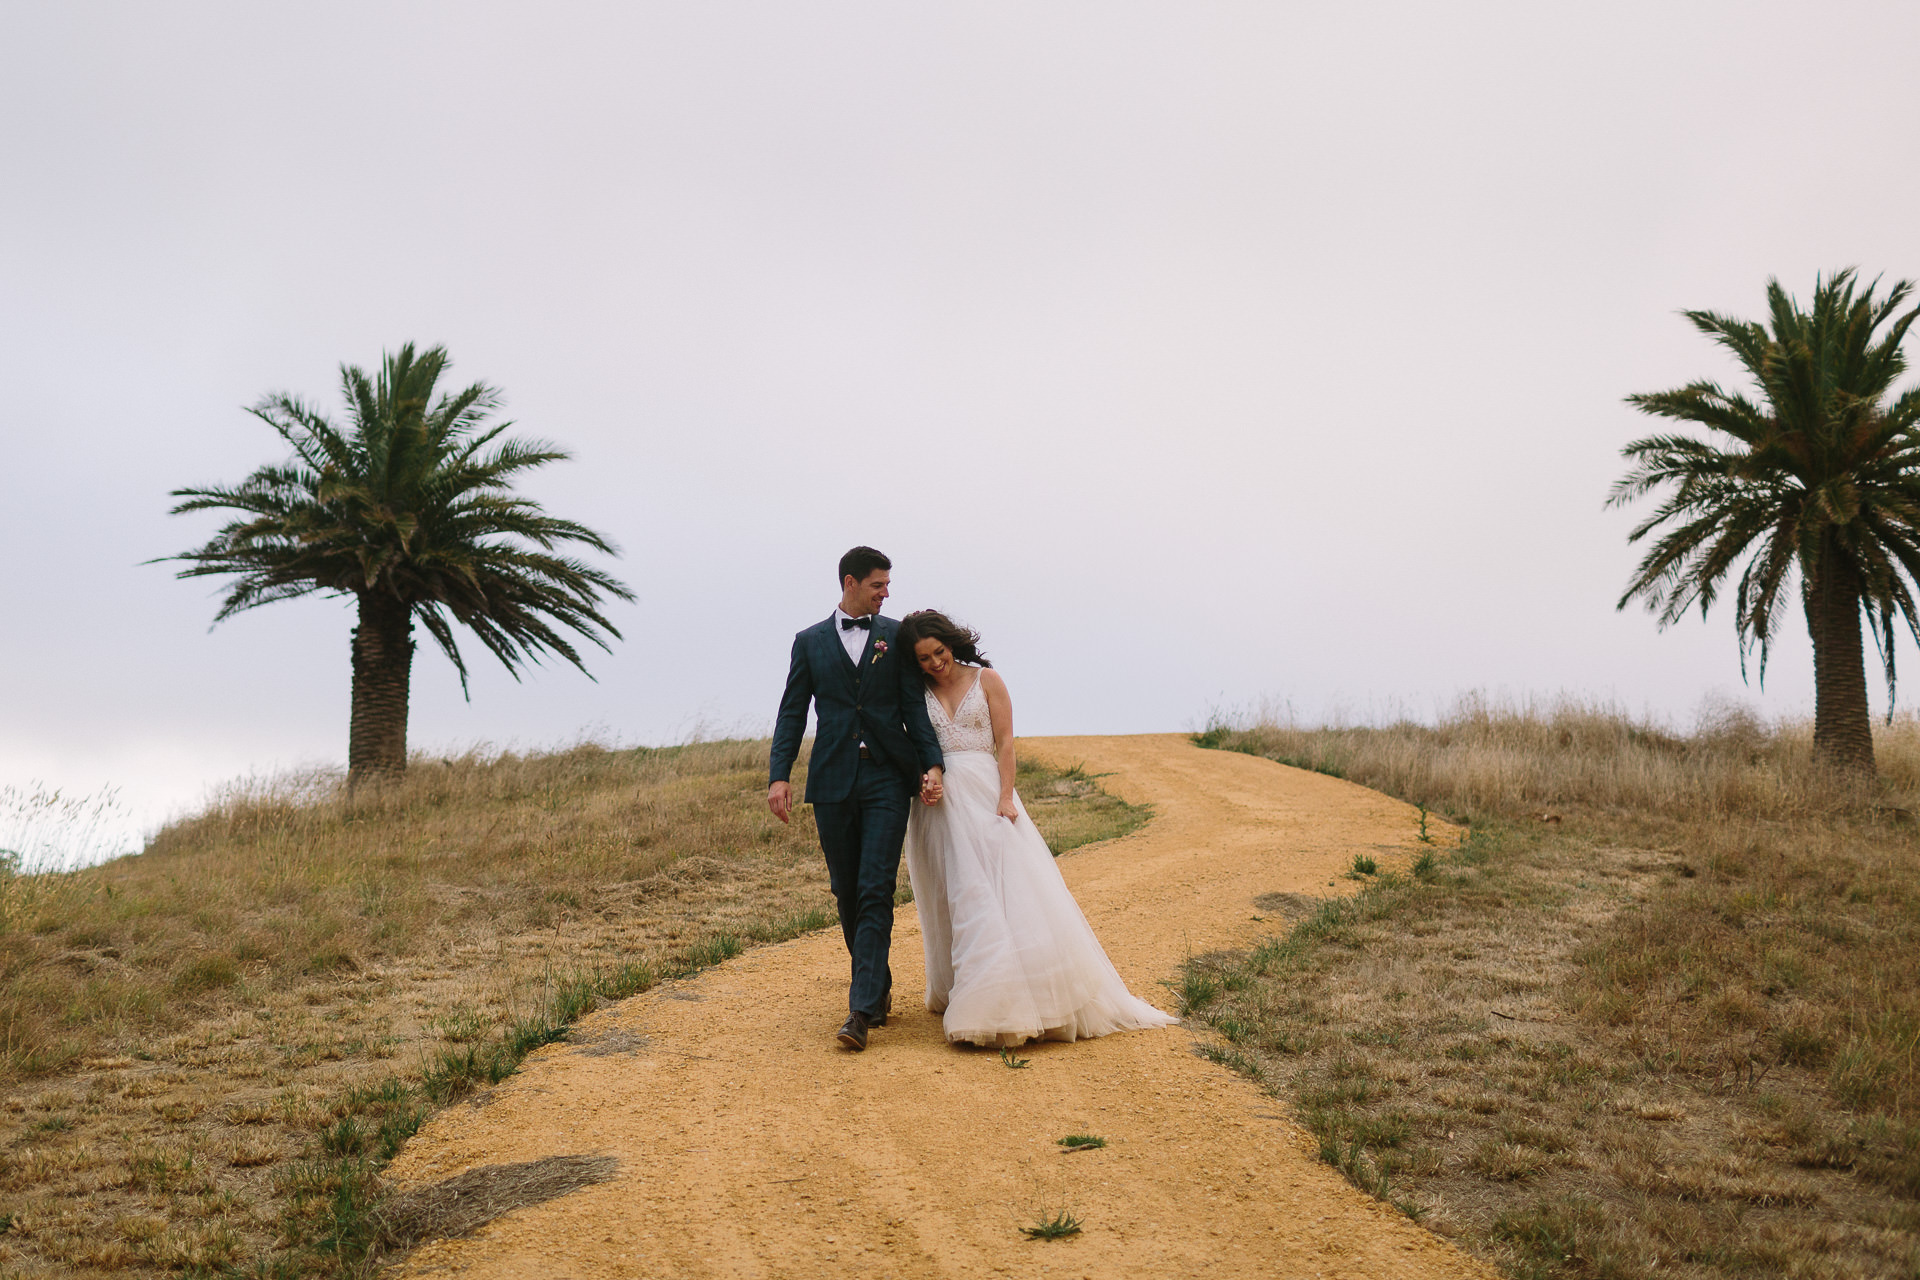 Bride and groom wander between the palm trees at Longview vineyard following their wedding ceremony